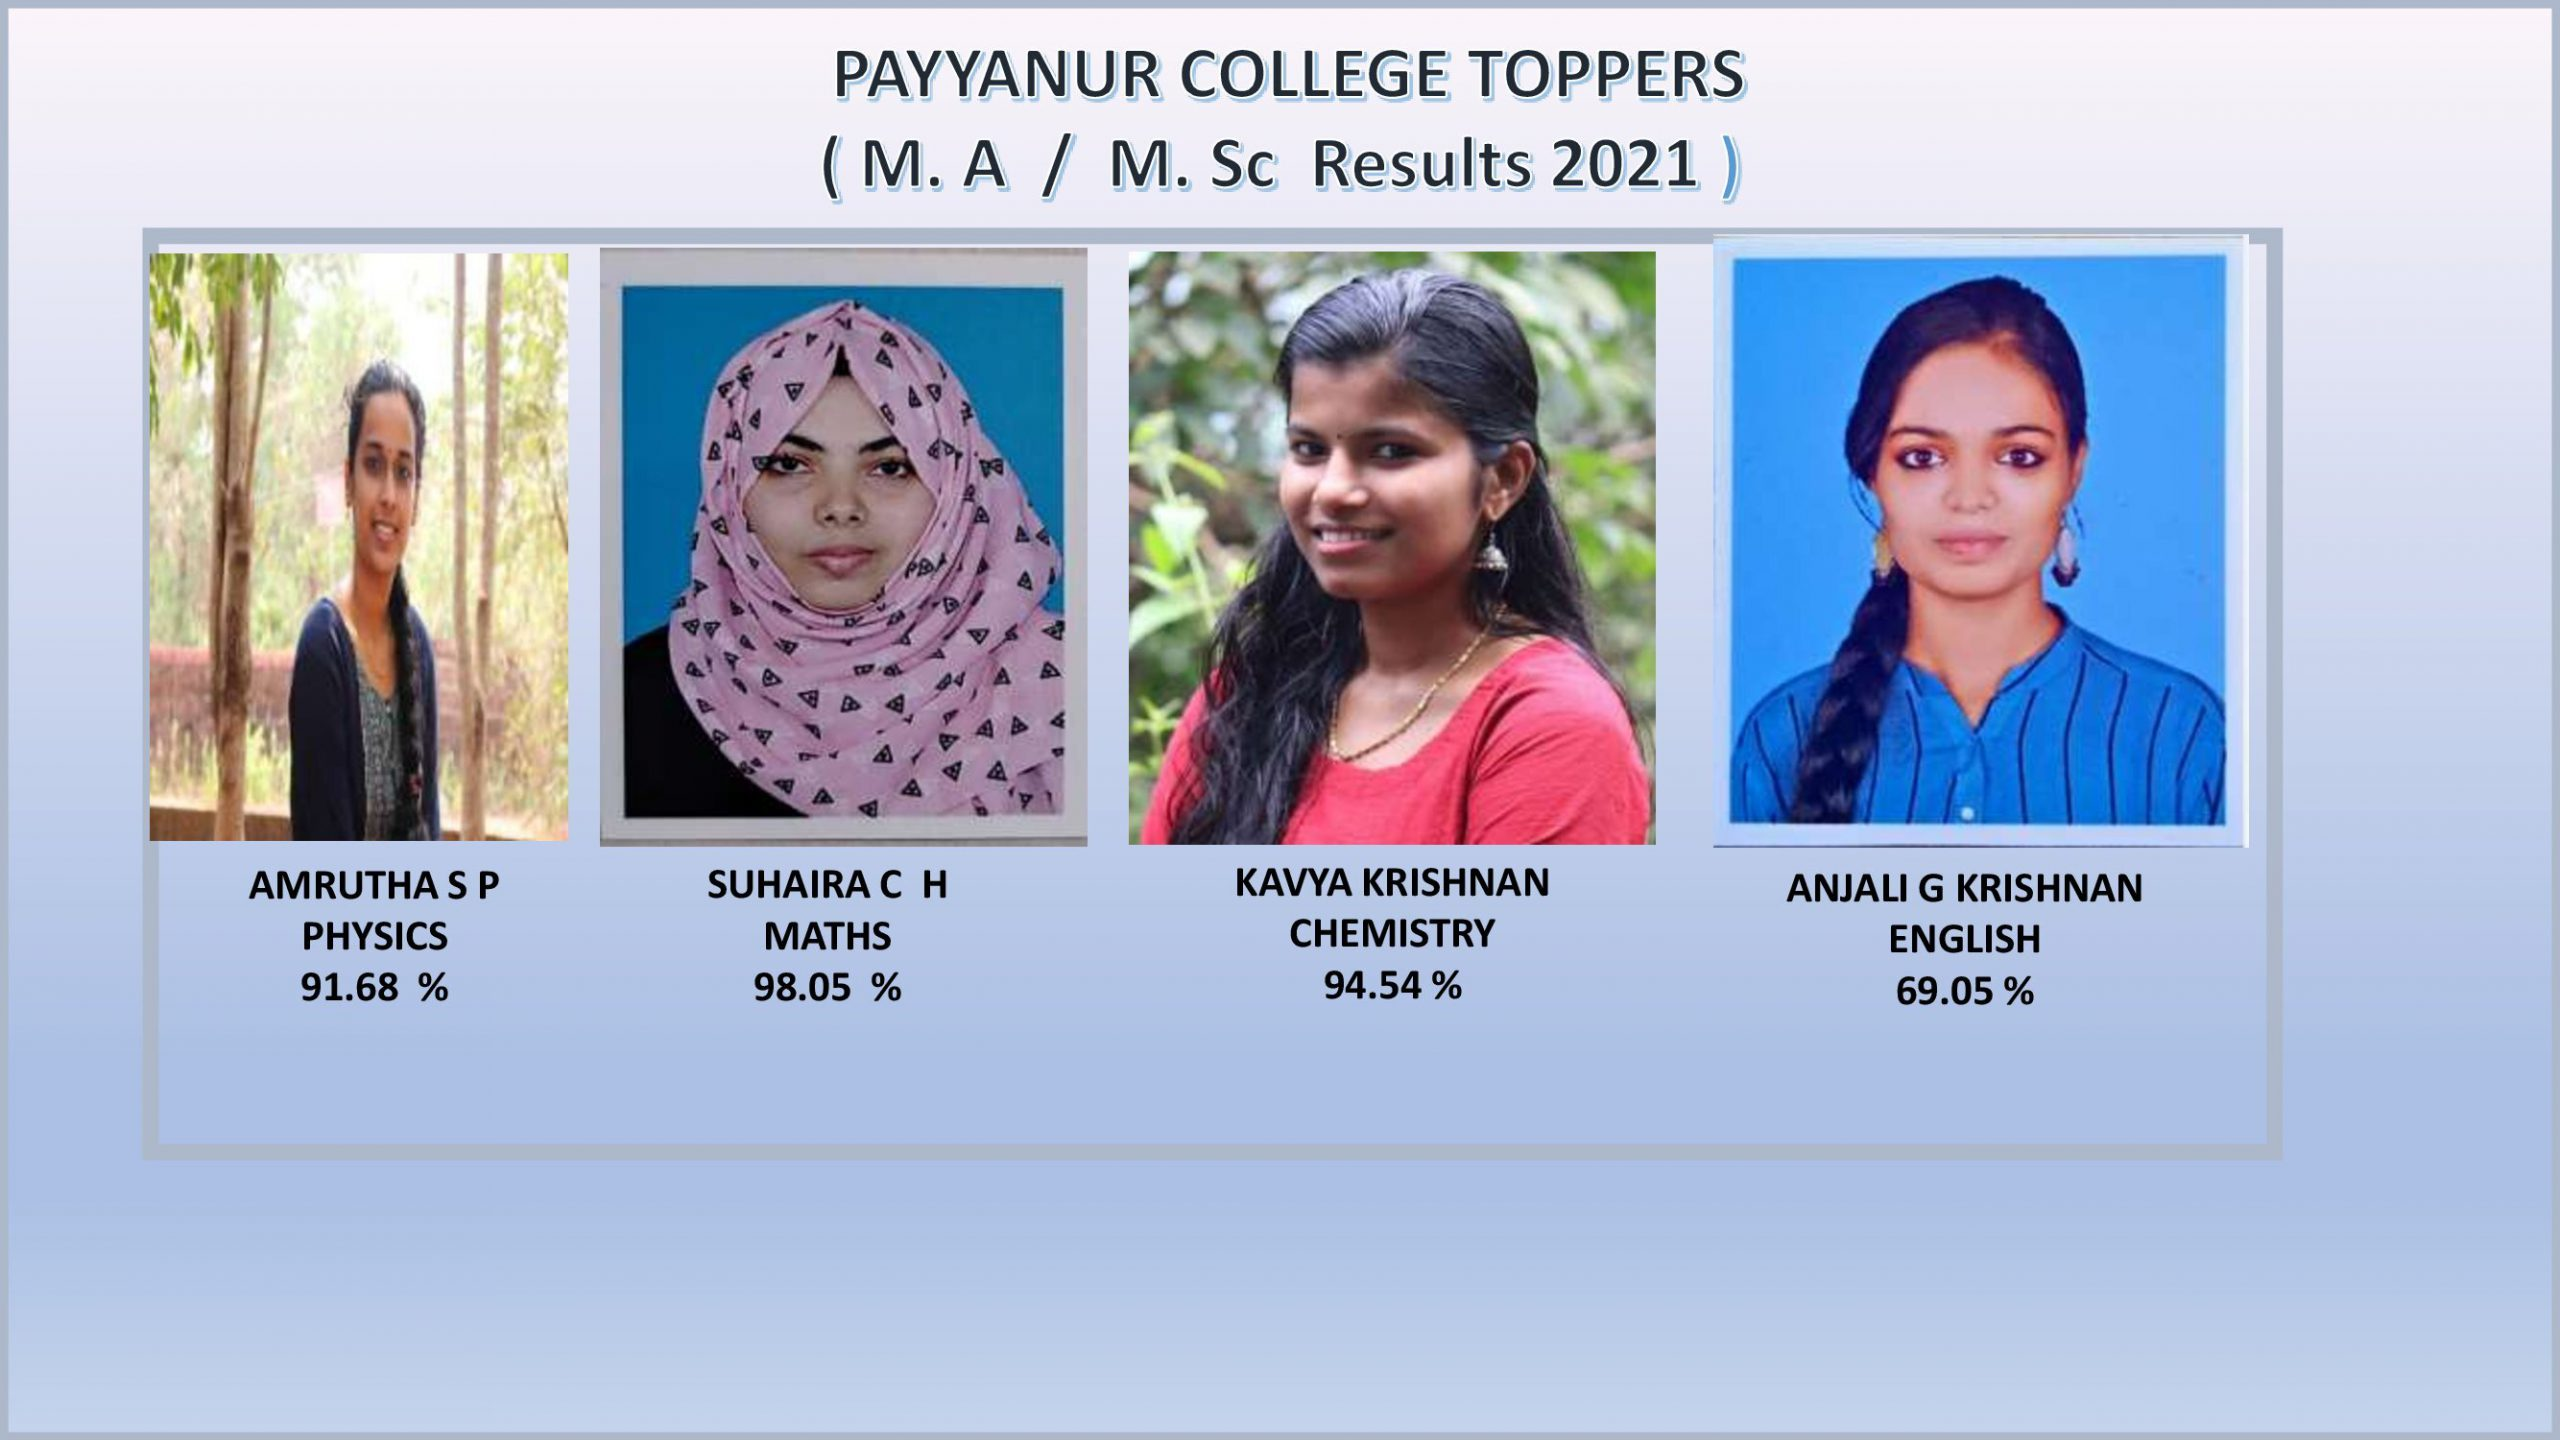 M. A / M. Sc EXAMINATION RESULTS 2021- PAYYANUR COLLEGE TOPPERS